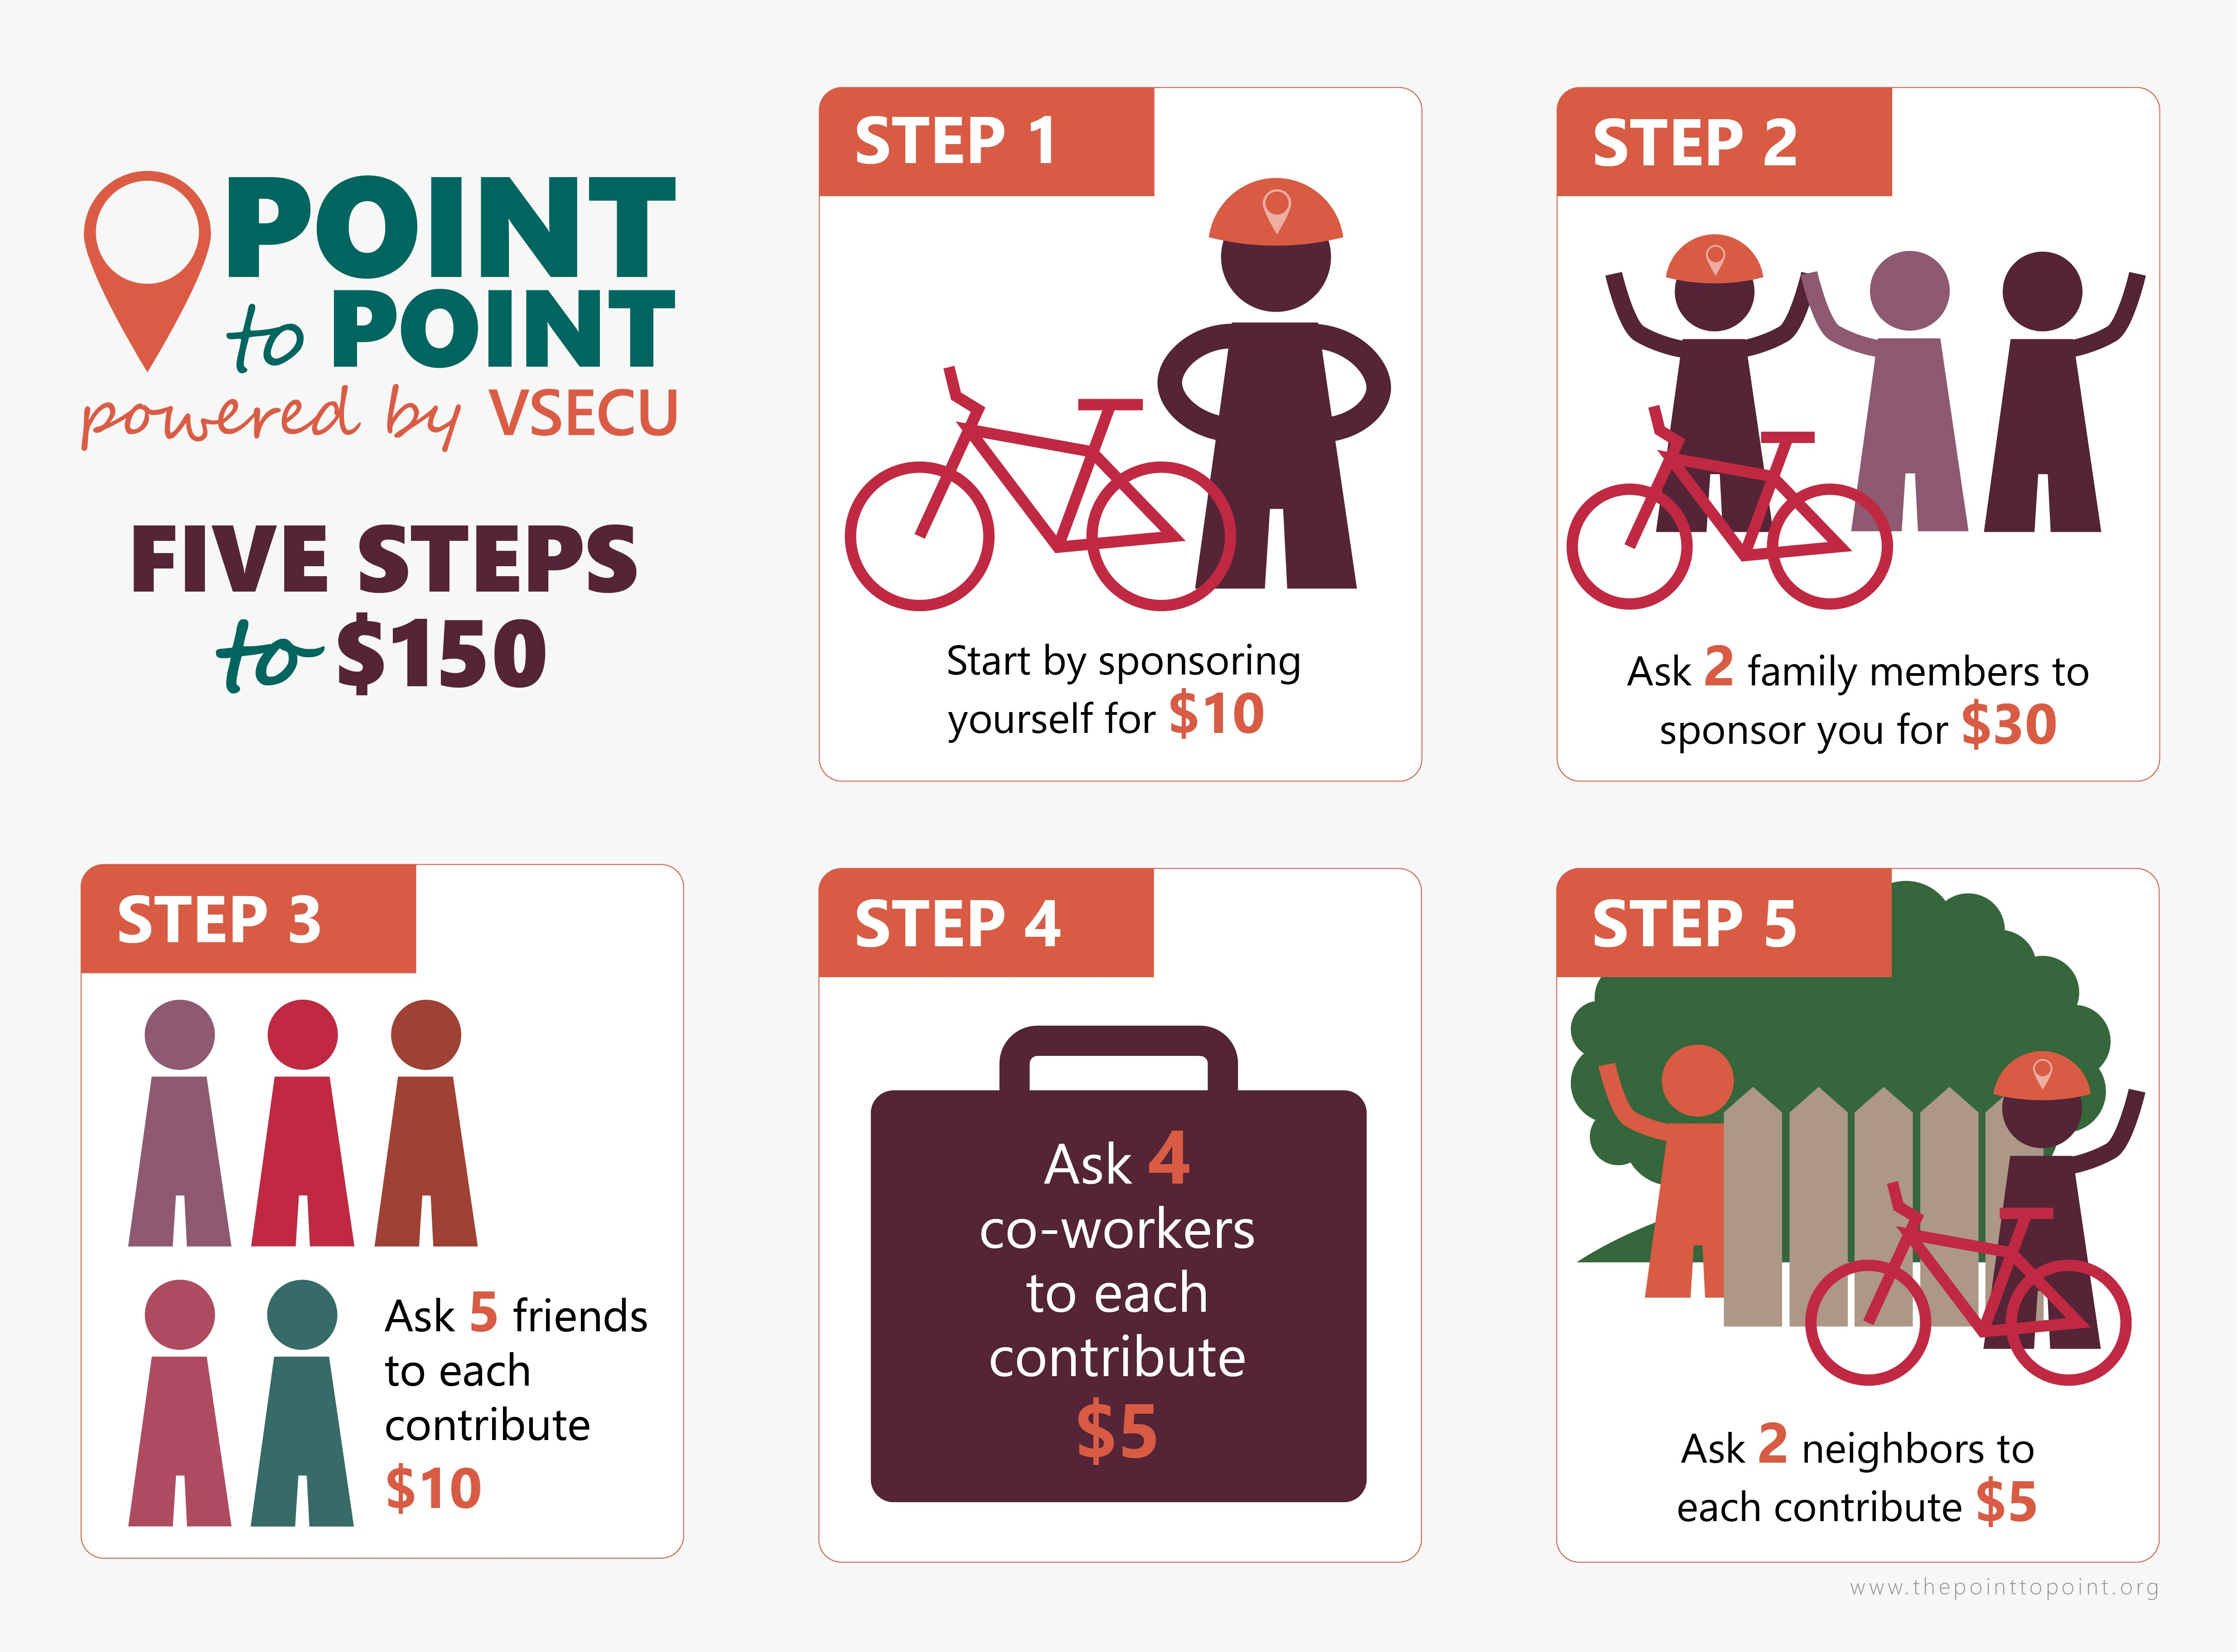 The Point to Point, powered by VSECU Five Steps to Fundraising $150